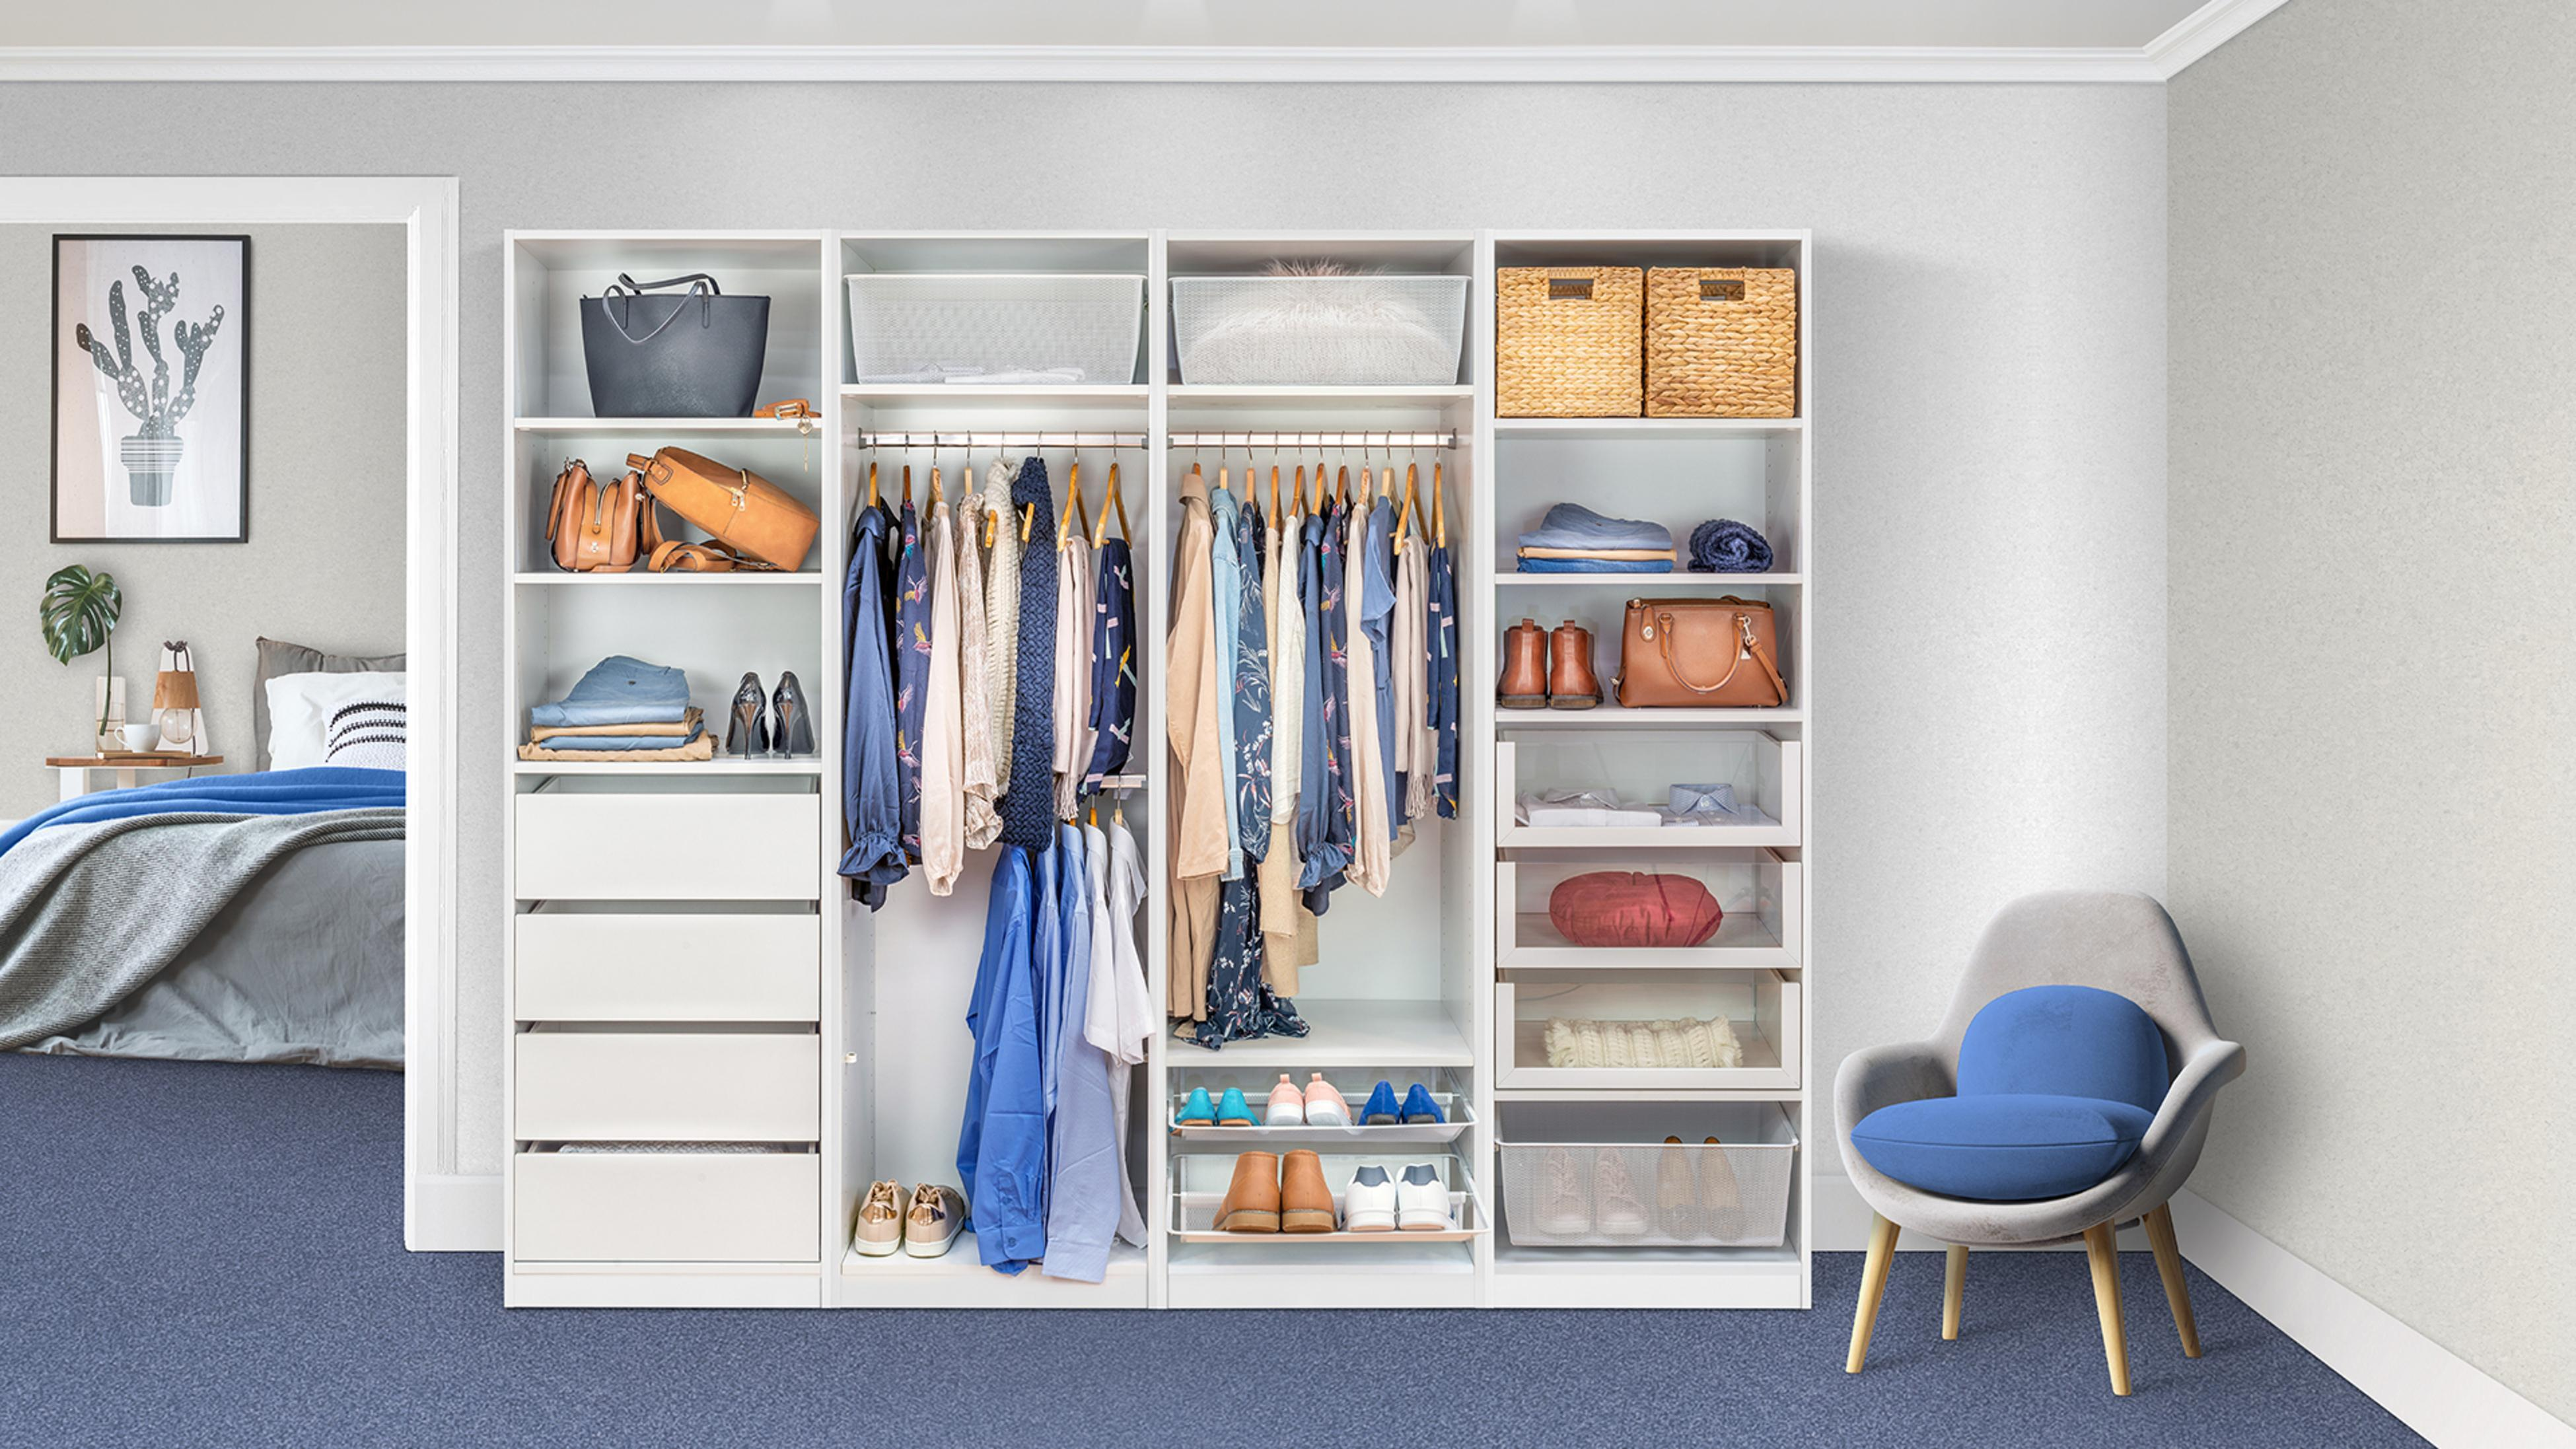 Organised wardrobe with blouses hanging.